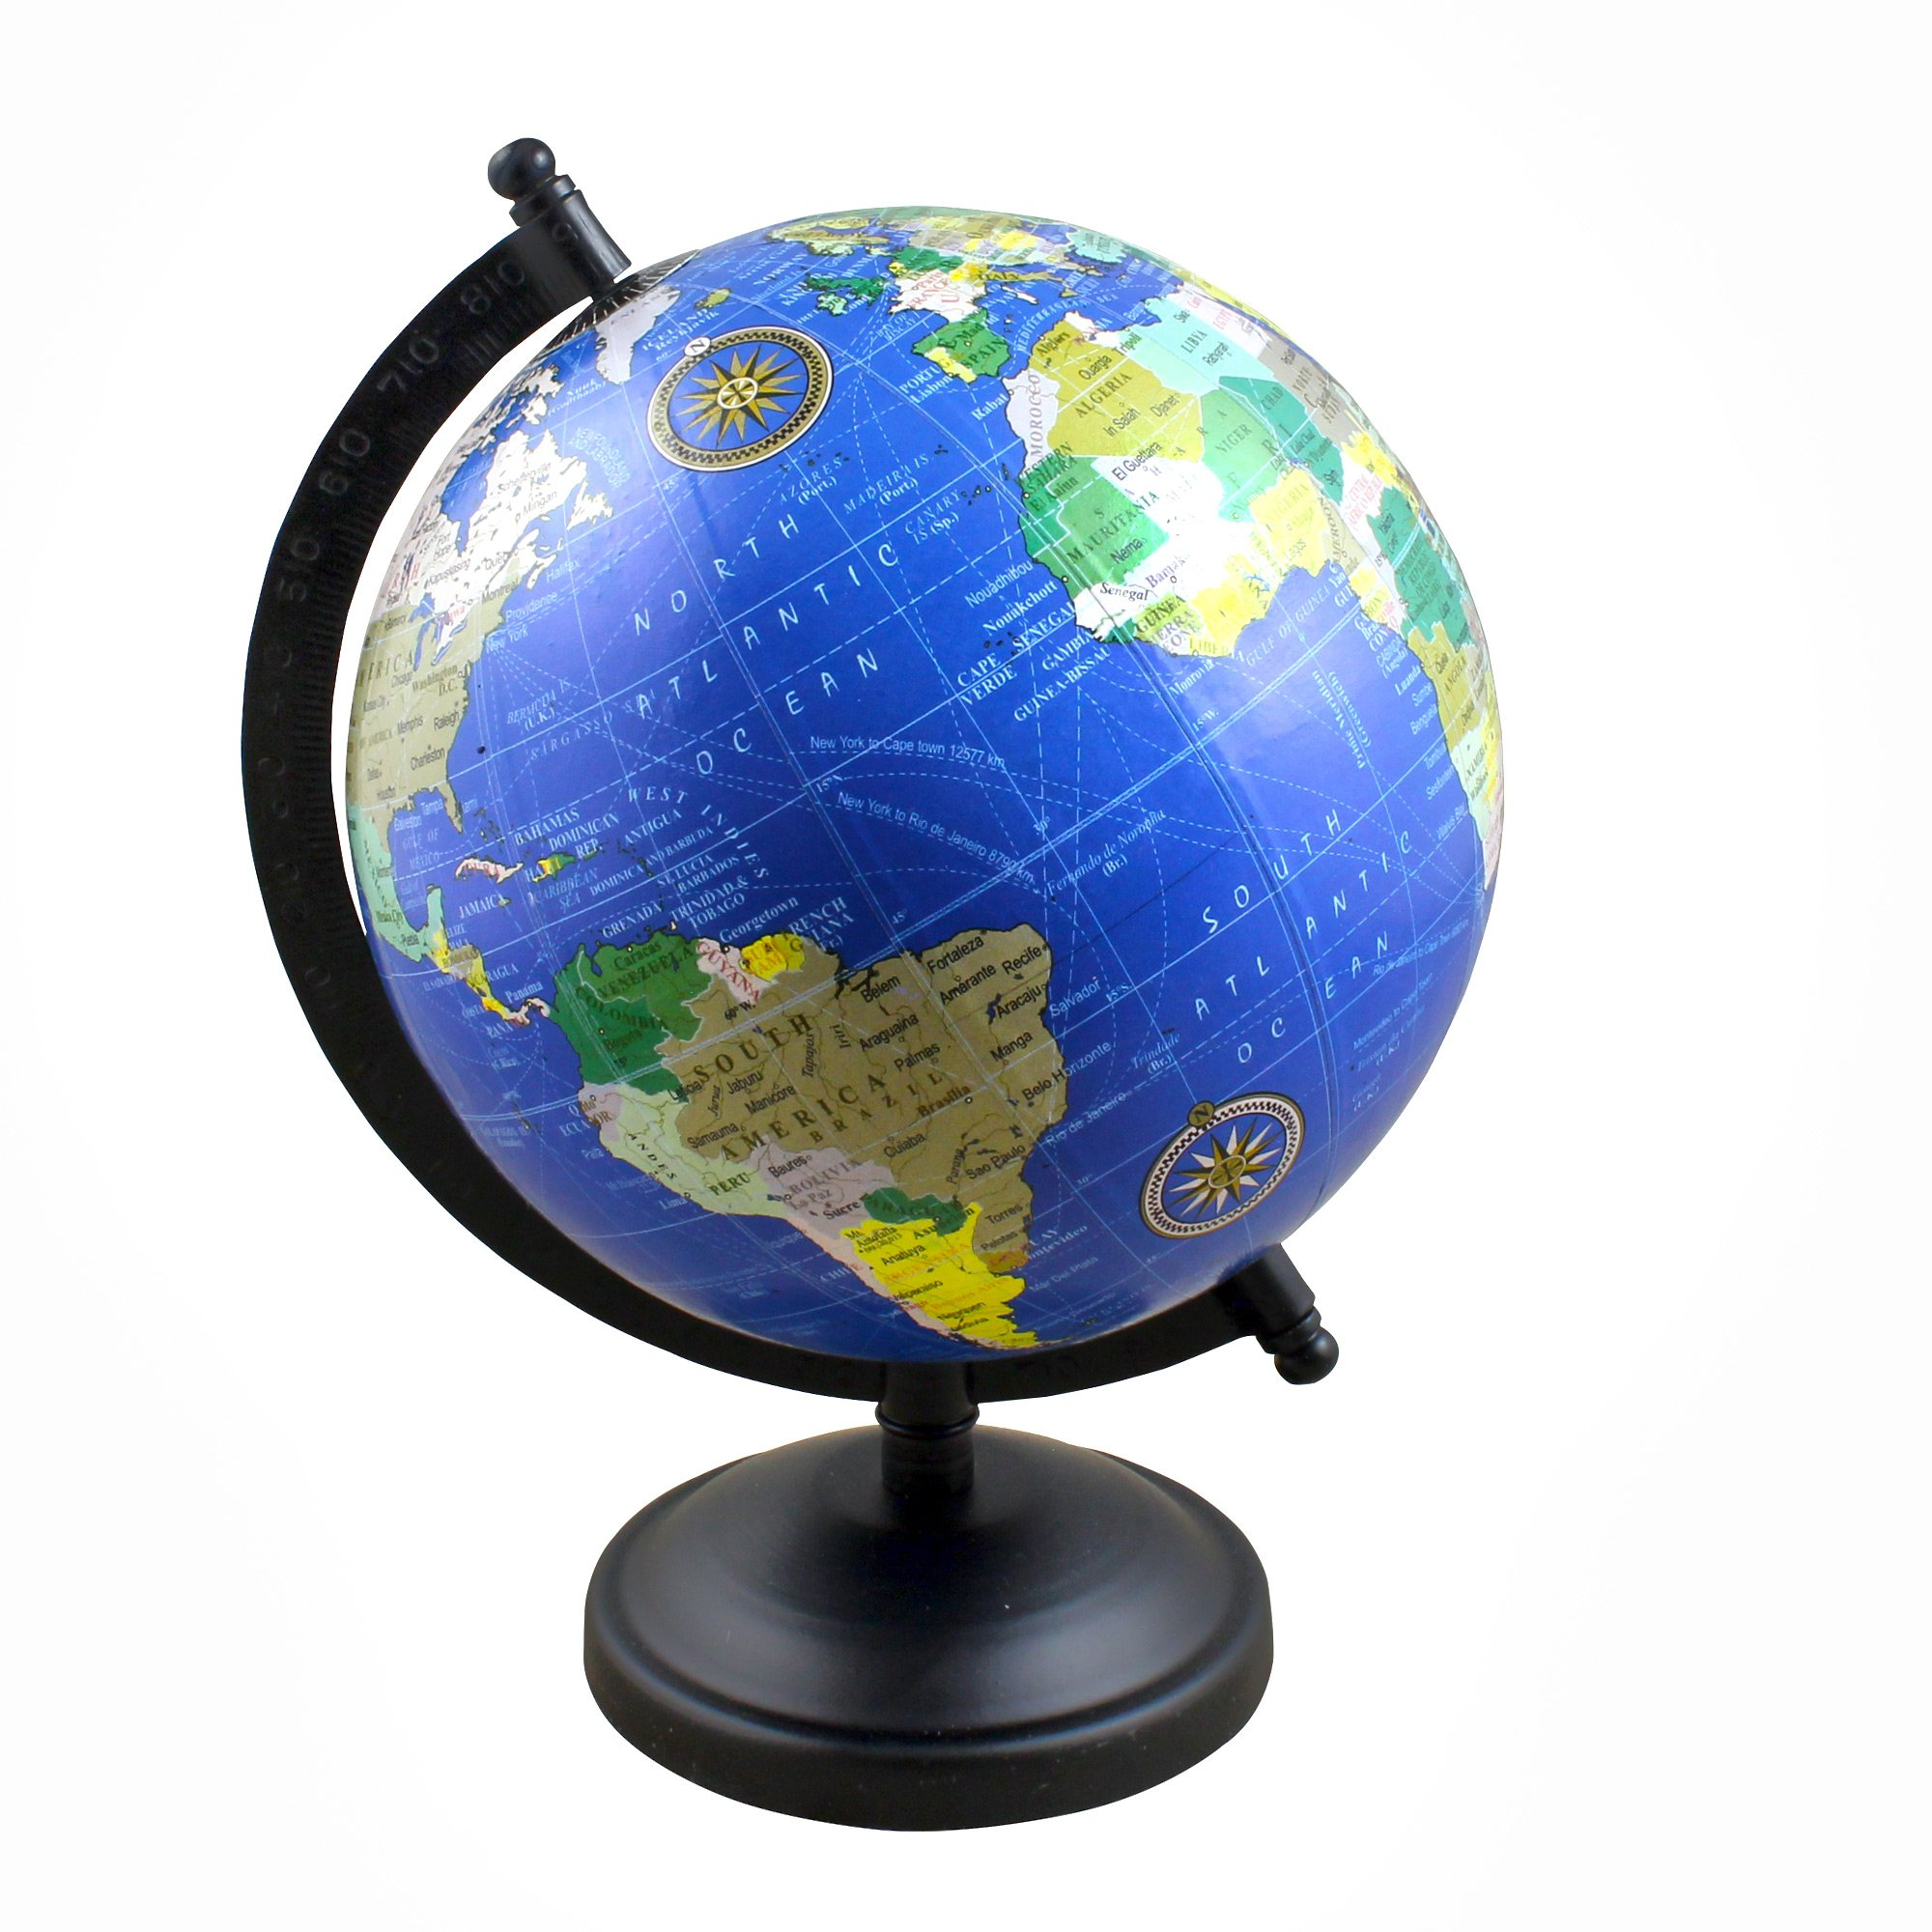 Desktop World Globe Geographical Map Spinning with Stand, 9 Inches - Perfect Gift for Home Office Desk Decoration - Stock Clearance Sale!!